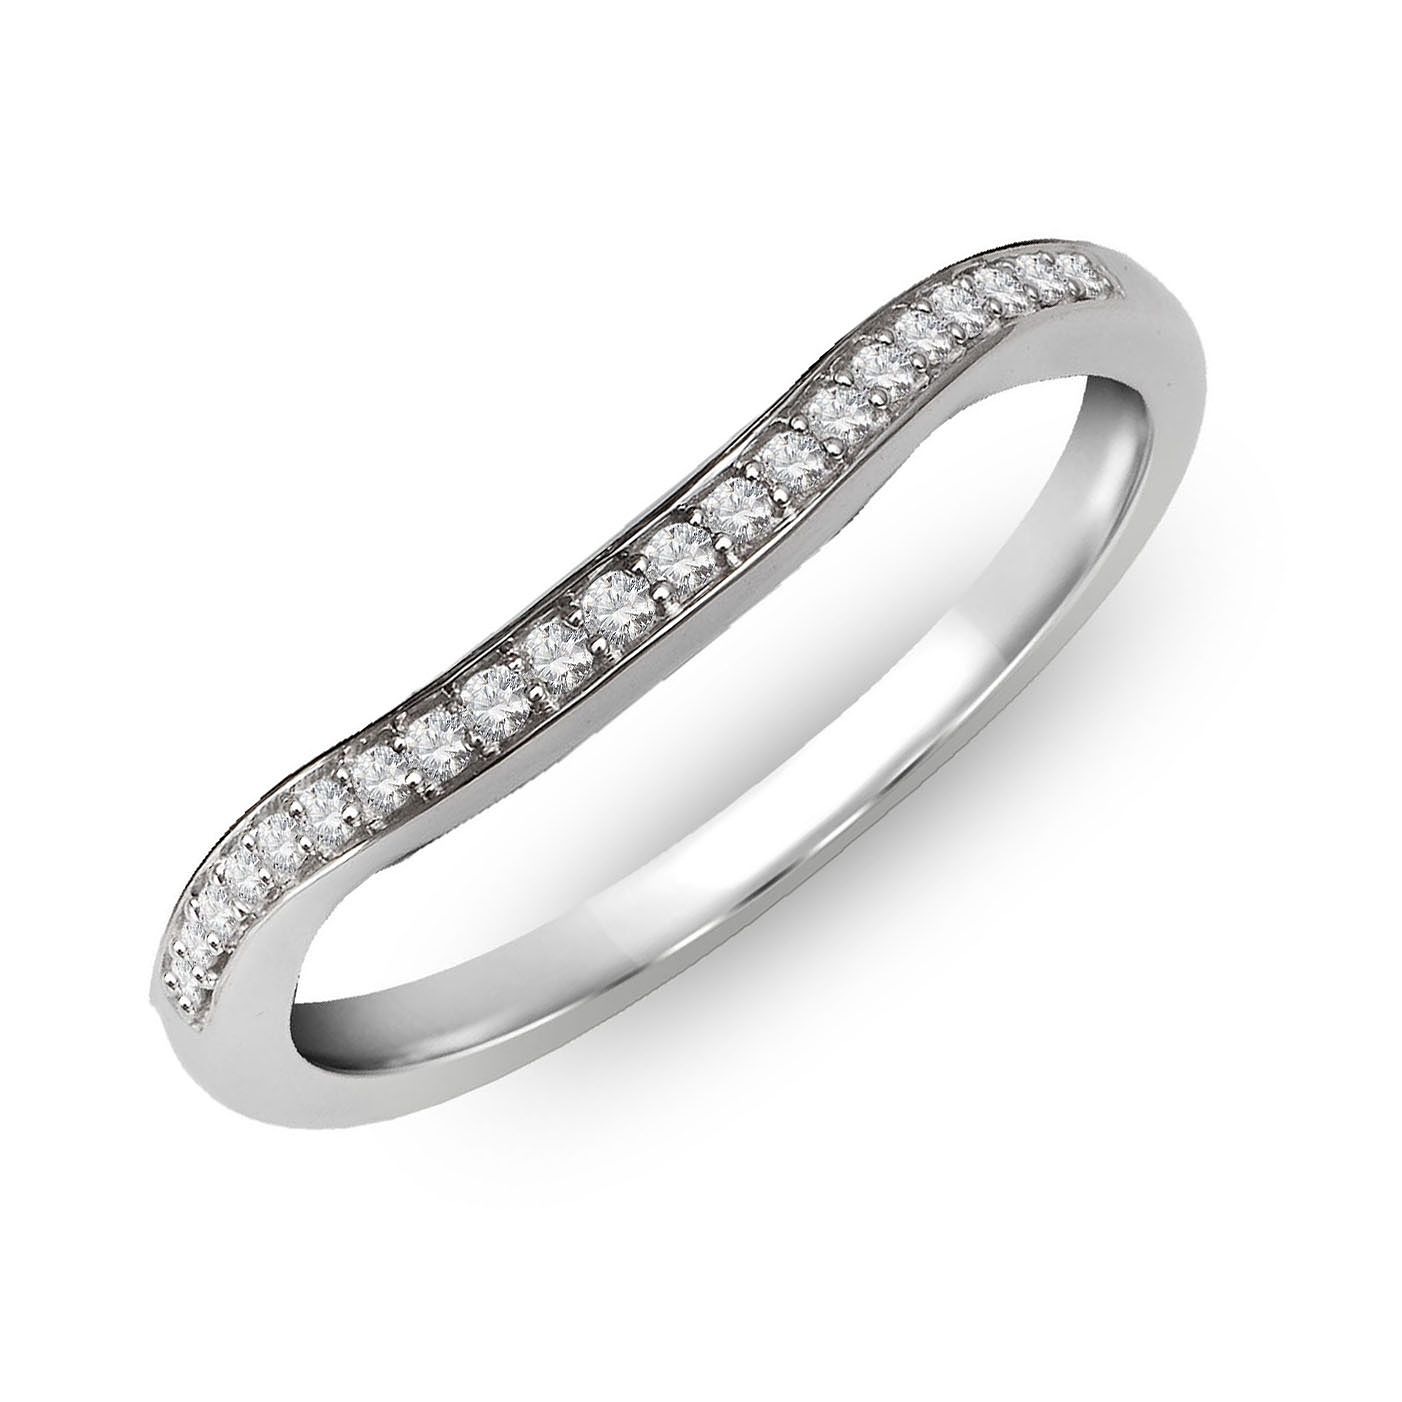 Perfect Fit 18ct White Gold & Diamond Wave Eternity Ring - Product number 2310139